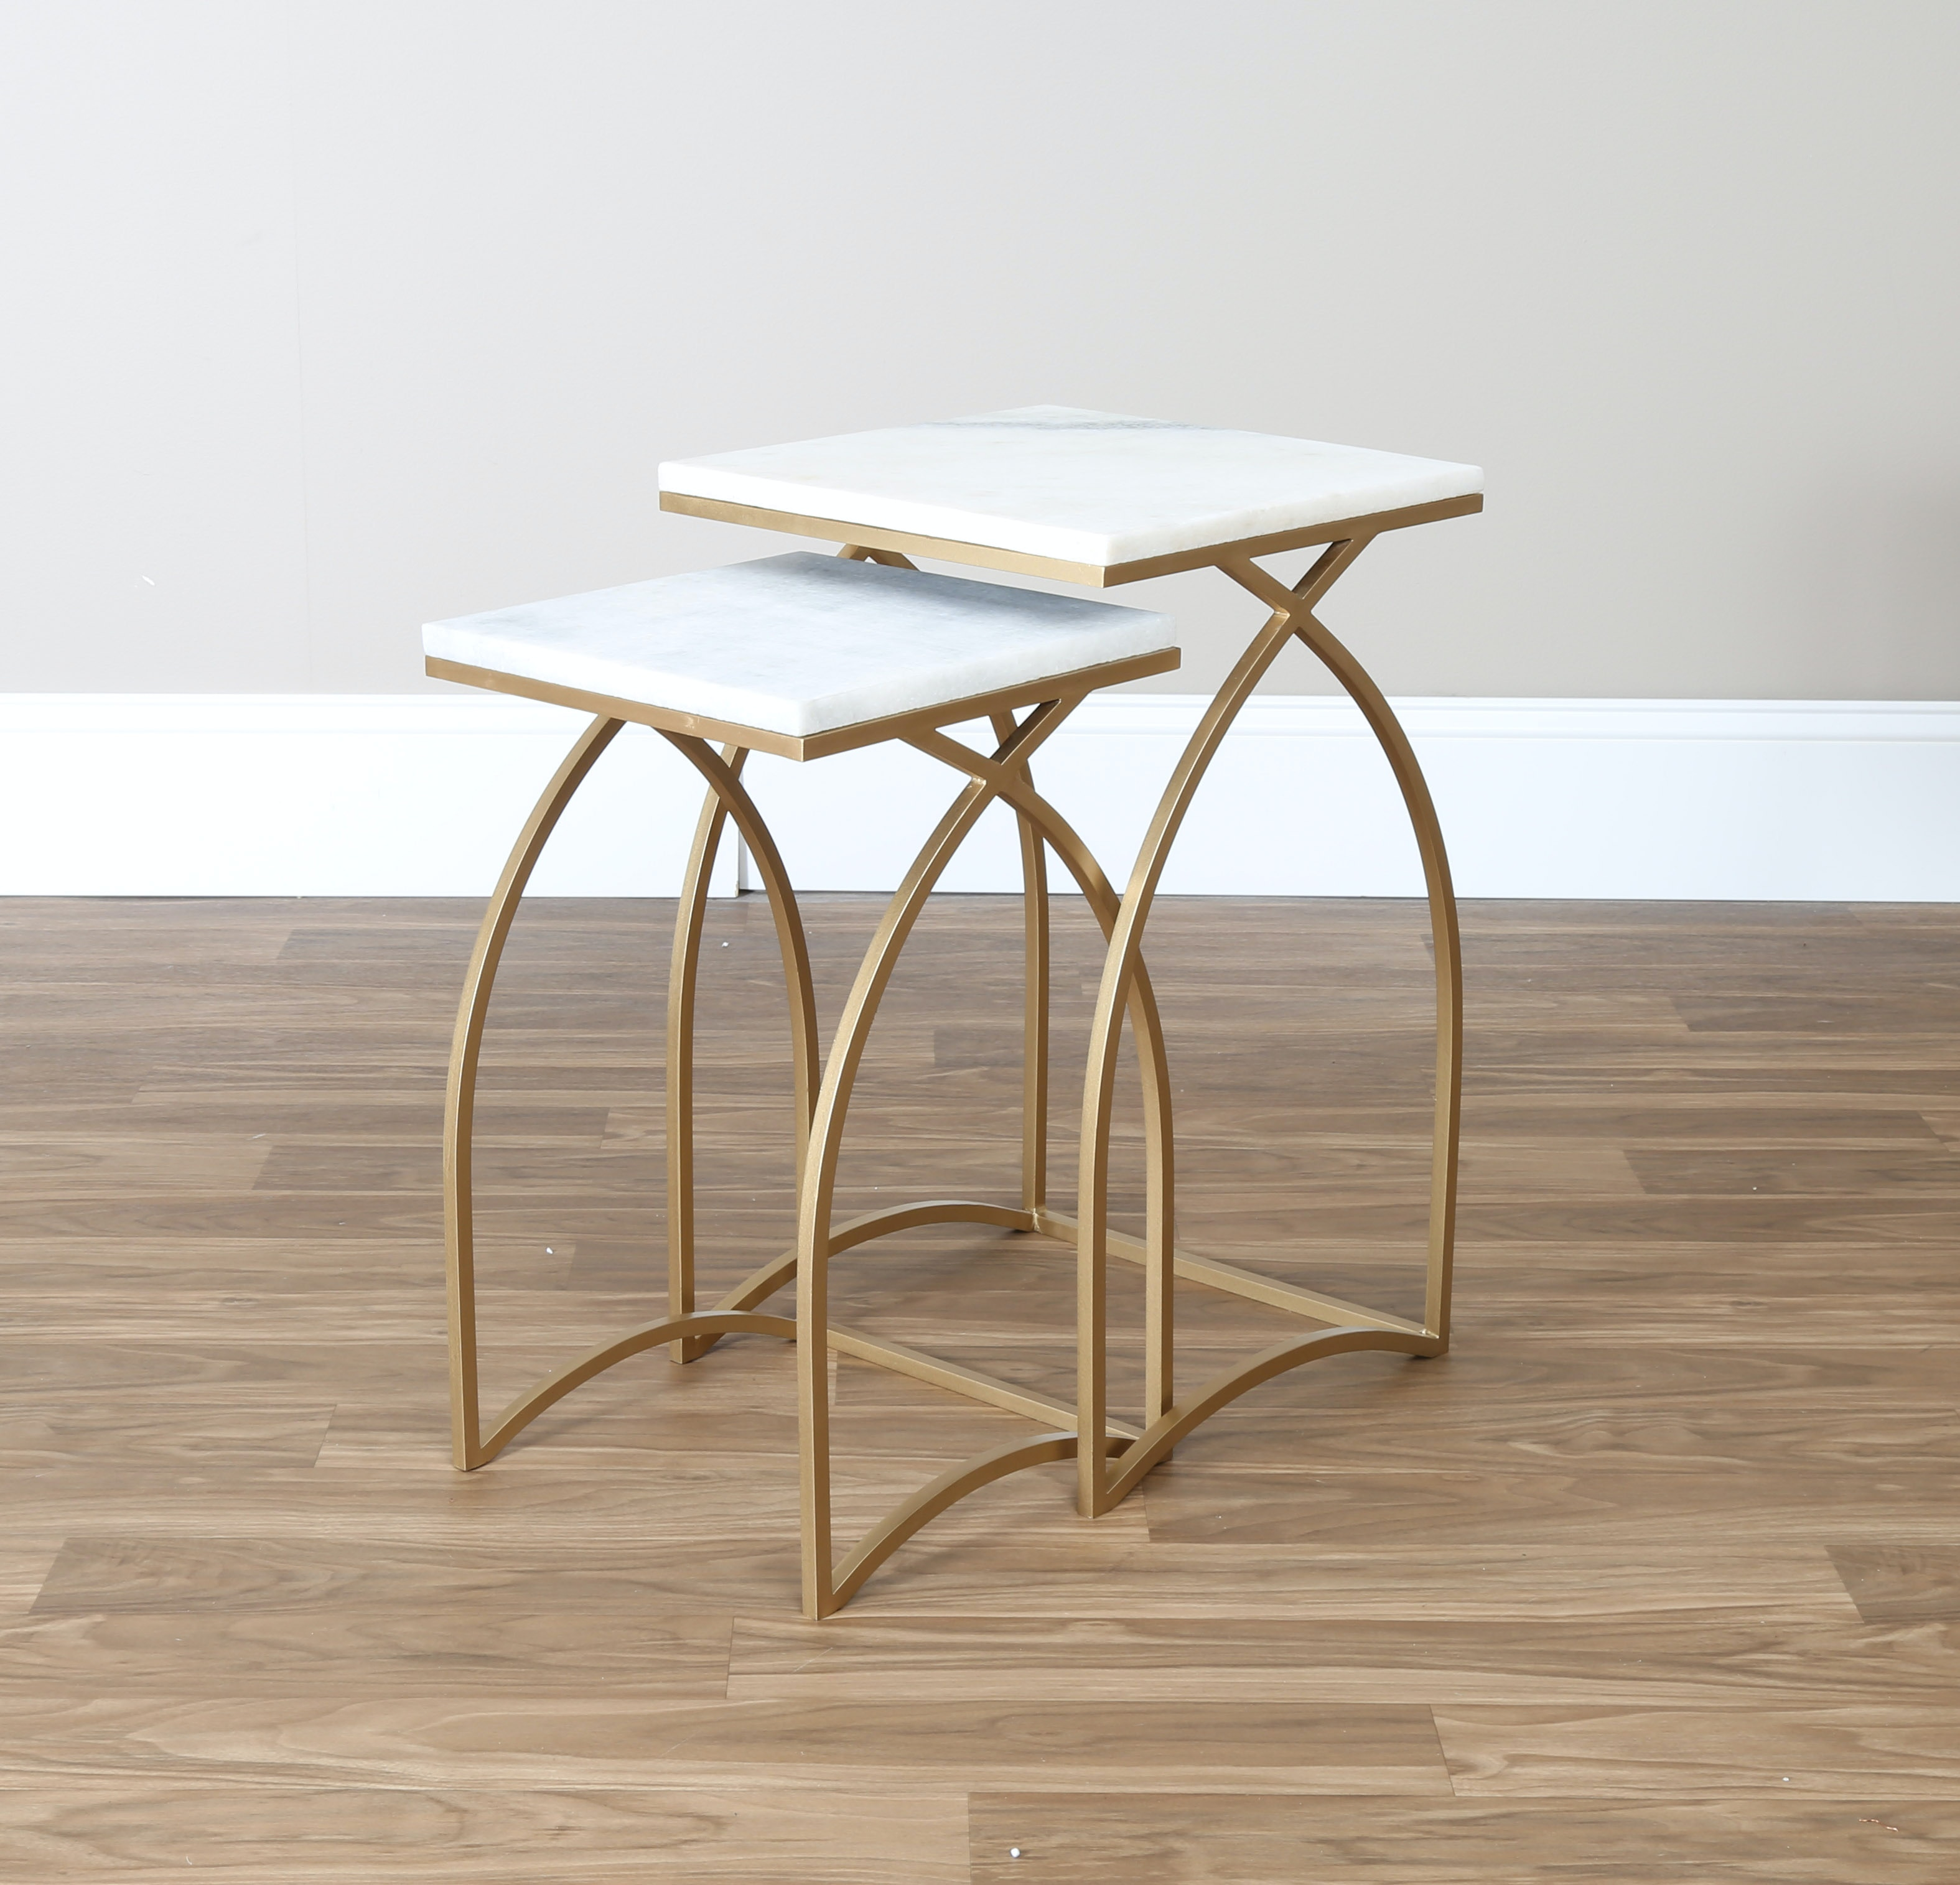 Nesting furniture Stackable Stock Program Tate Marble Nesting Tables Stmaw70021st Walter E Smithe Tate Marble Nesting Tables